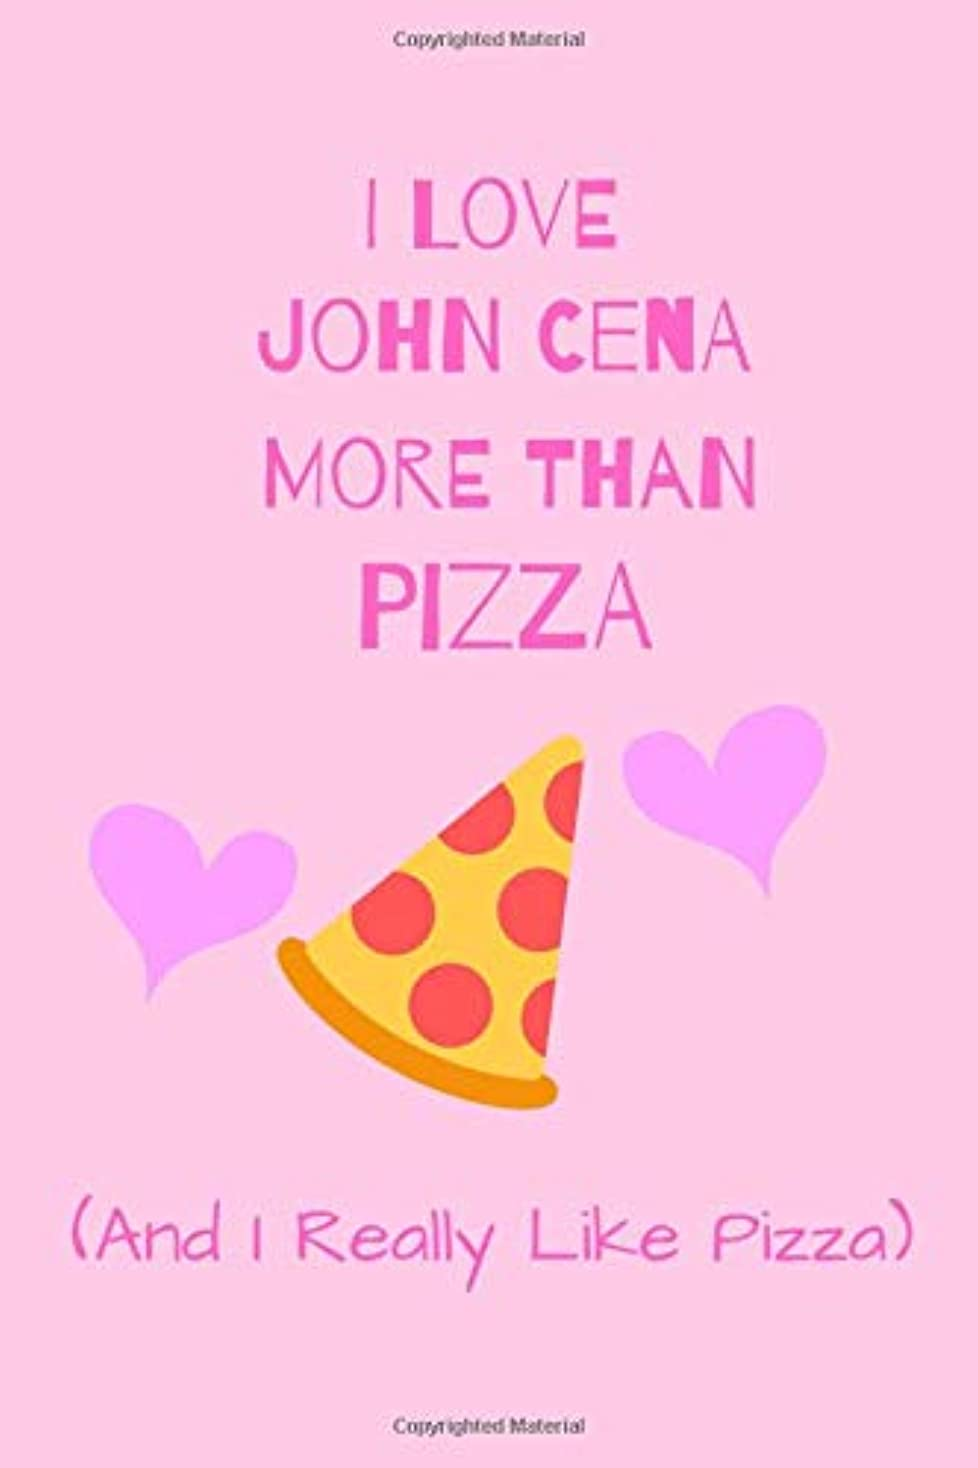 びん力学政治的I Love John Cena More Than Pizza ( And I Really Like Pizza): Fan Novelty Notebook / Journal / Gift / Diary 120 Lined Pages (6